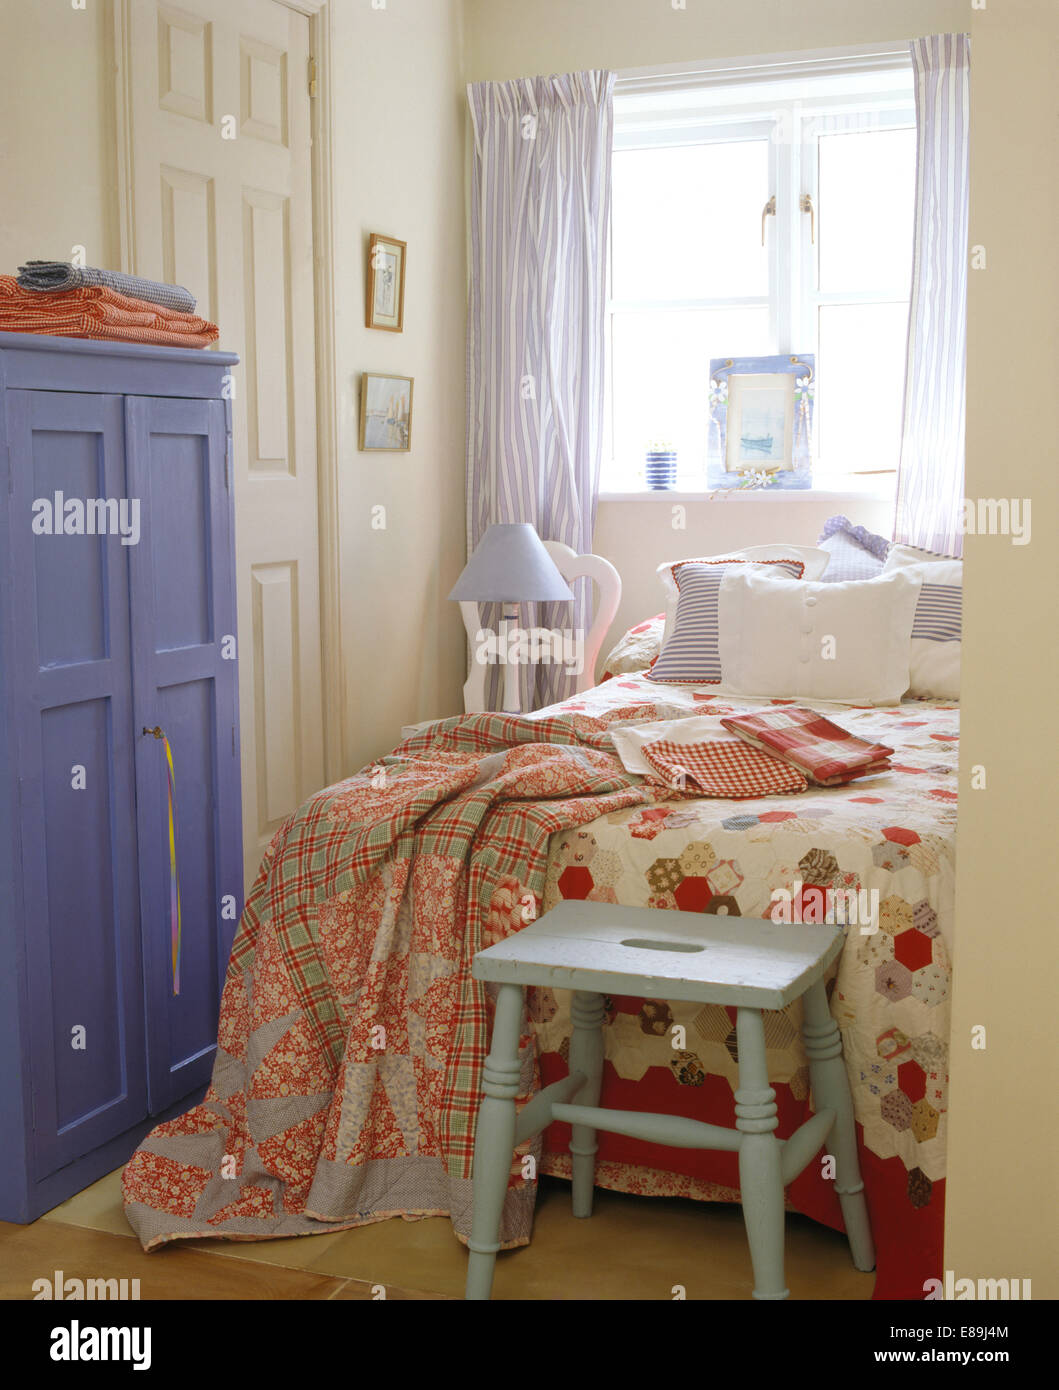 Painted stool below bed with patchwork quilt and floral ...